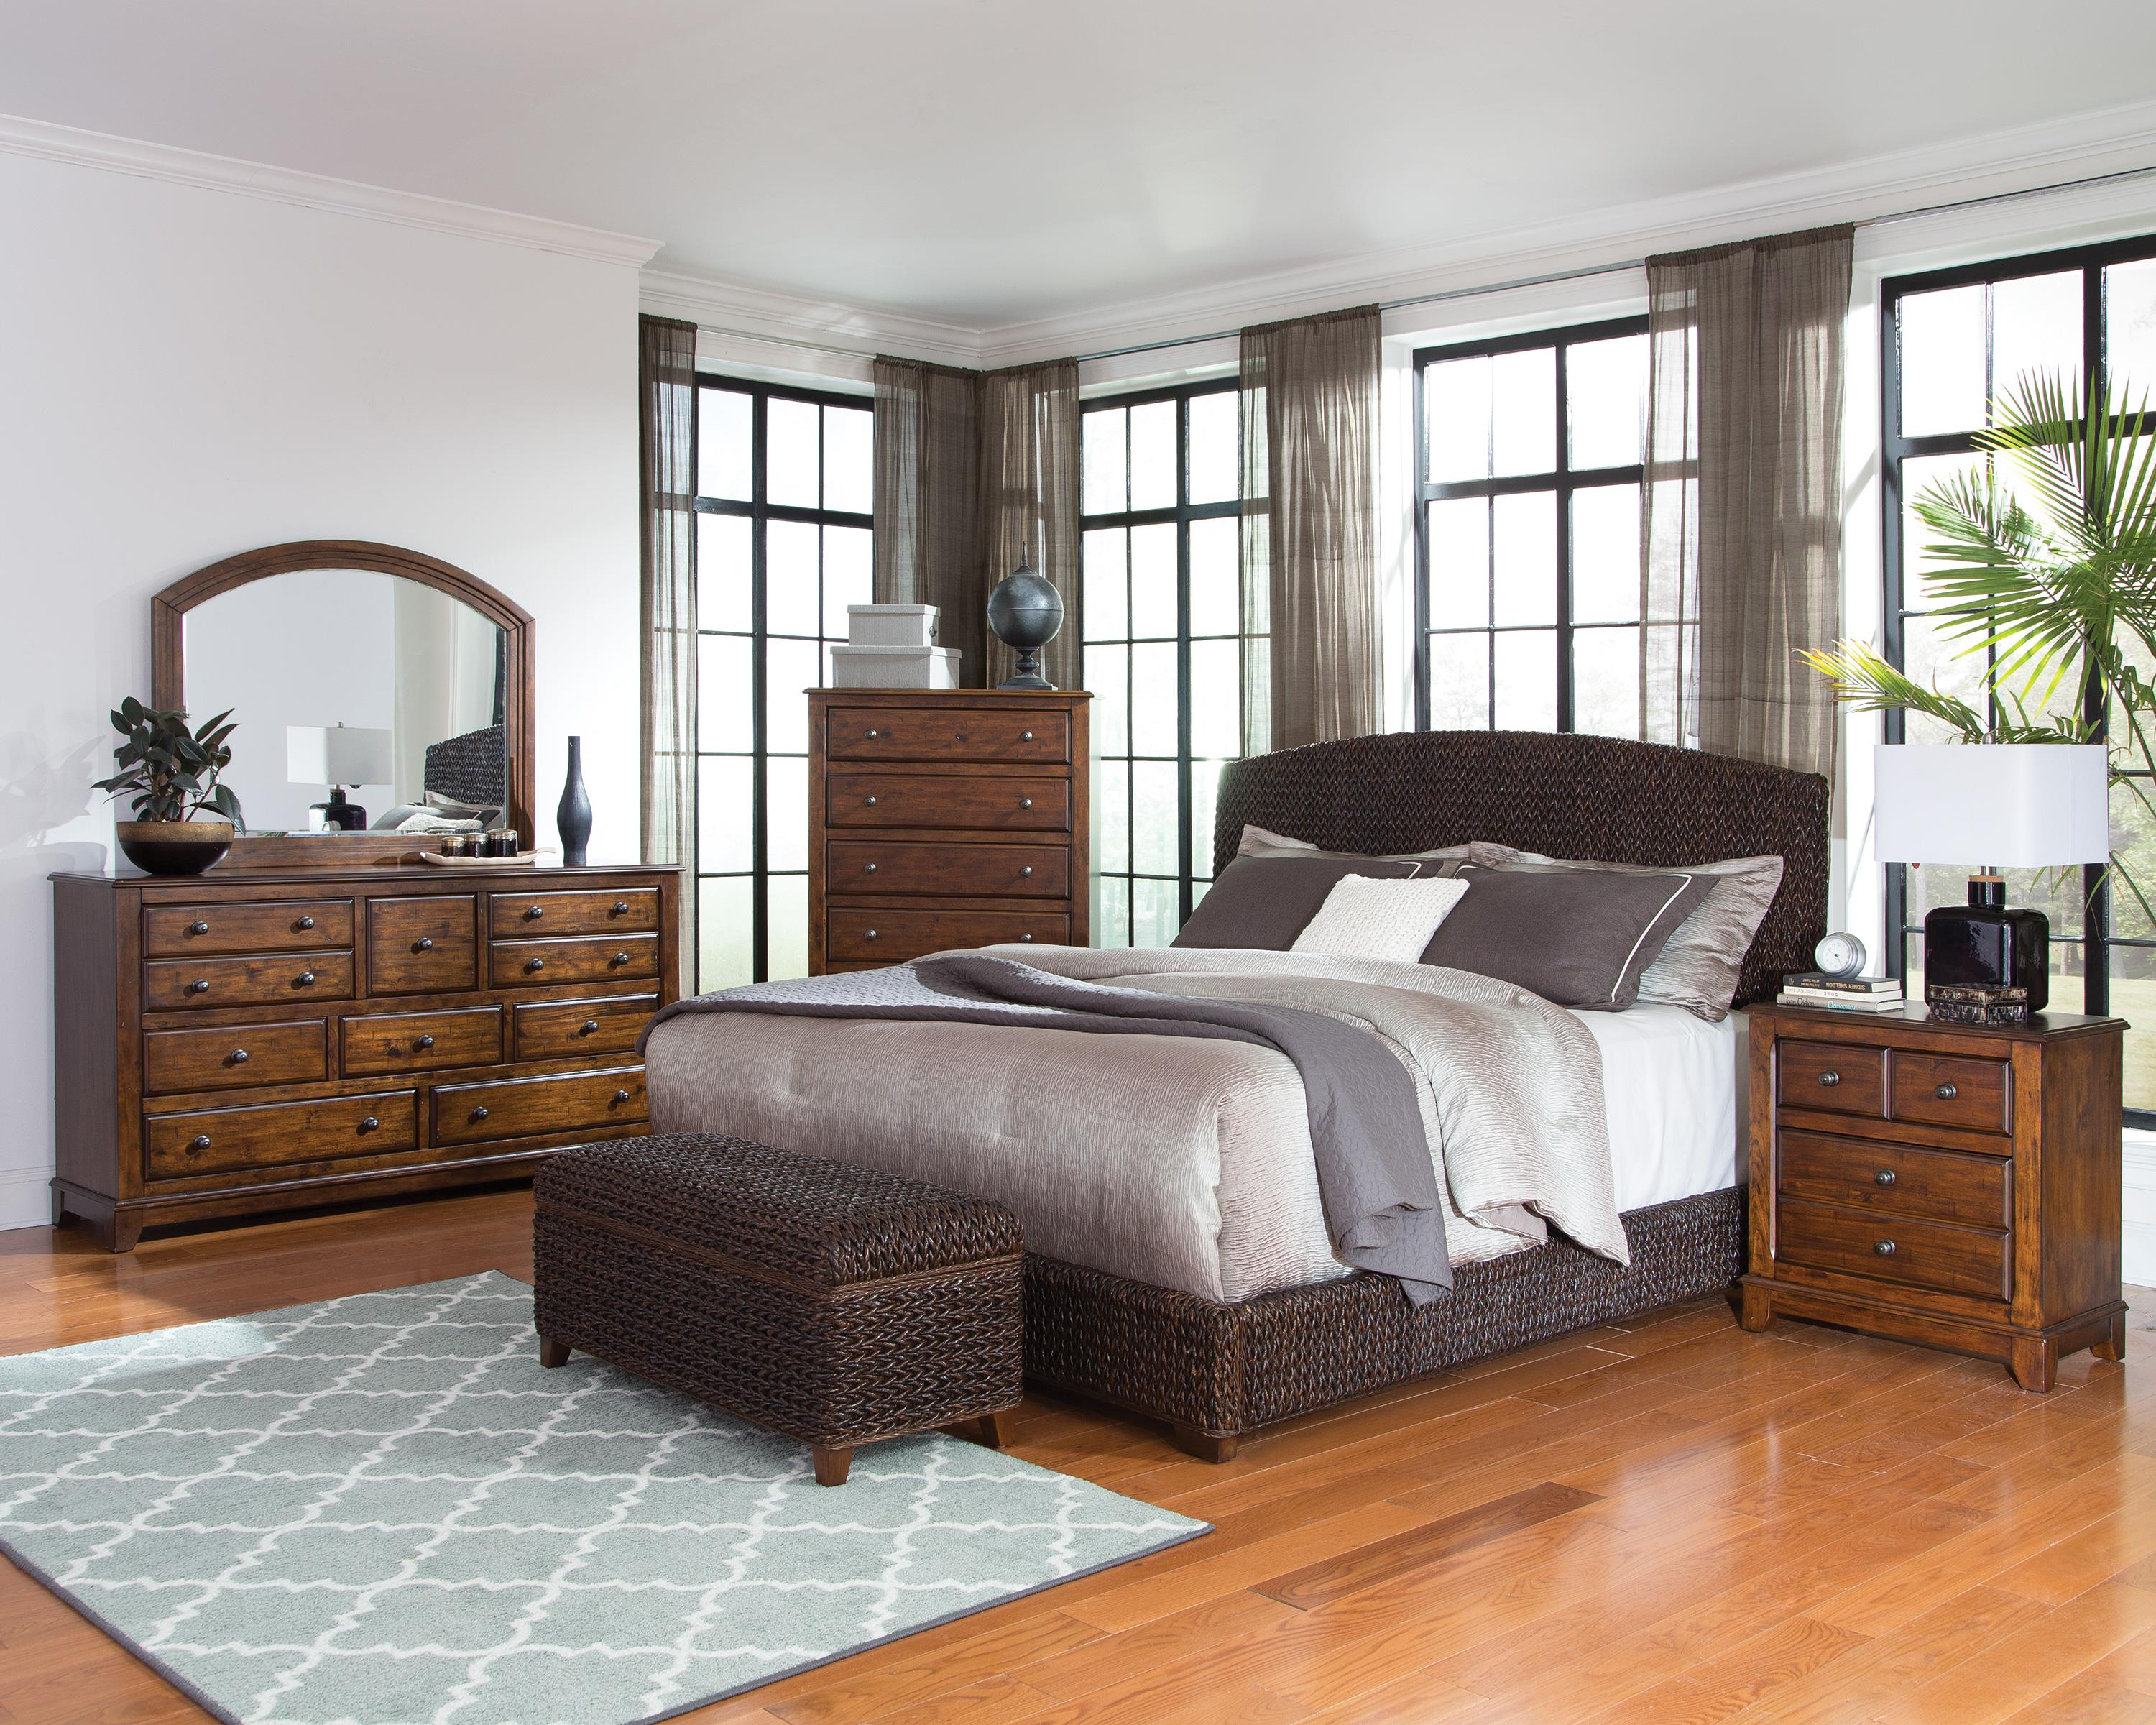 Laughton Woven Banana Leaf Queen Bed Quality Furniture At Affordable Prices In Philadelphia